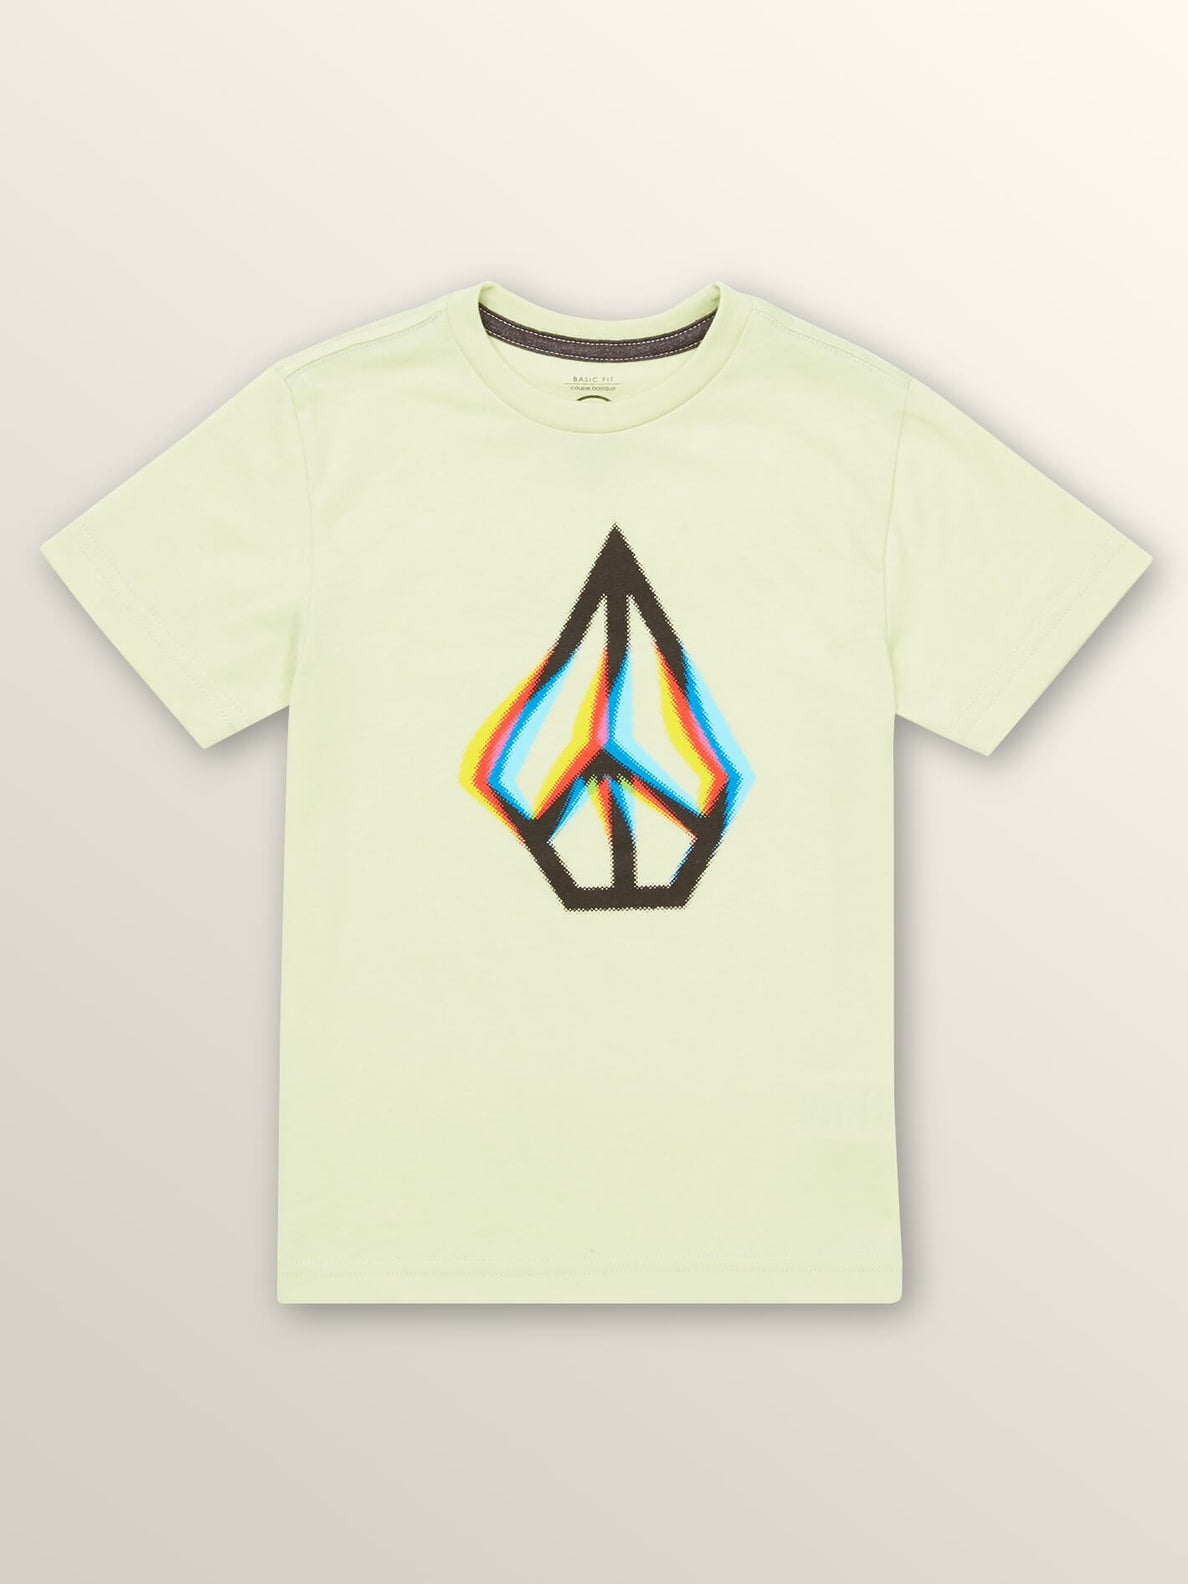 Little Boys Peace Blur Short Sleeve Tee In Mist Green, Front View